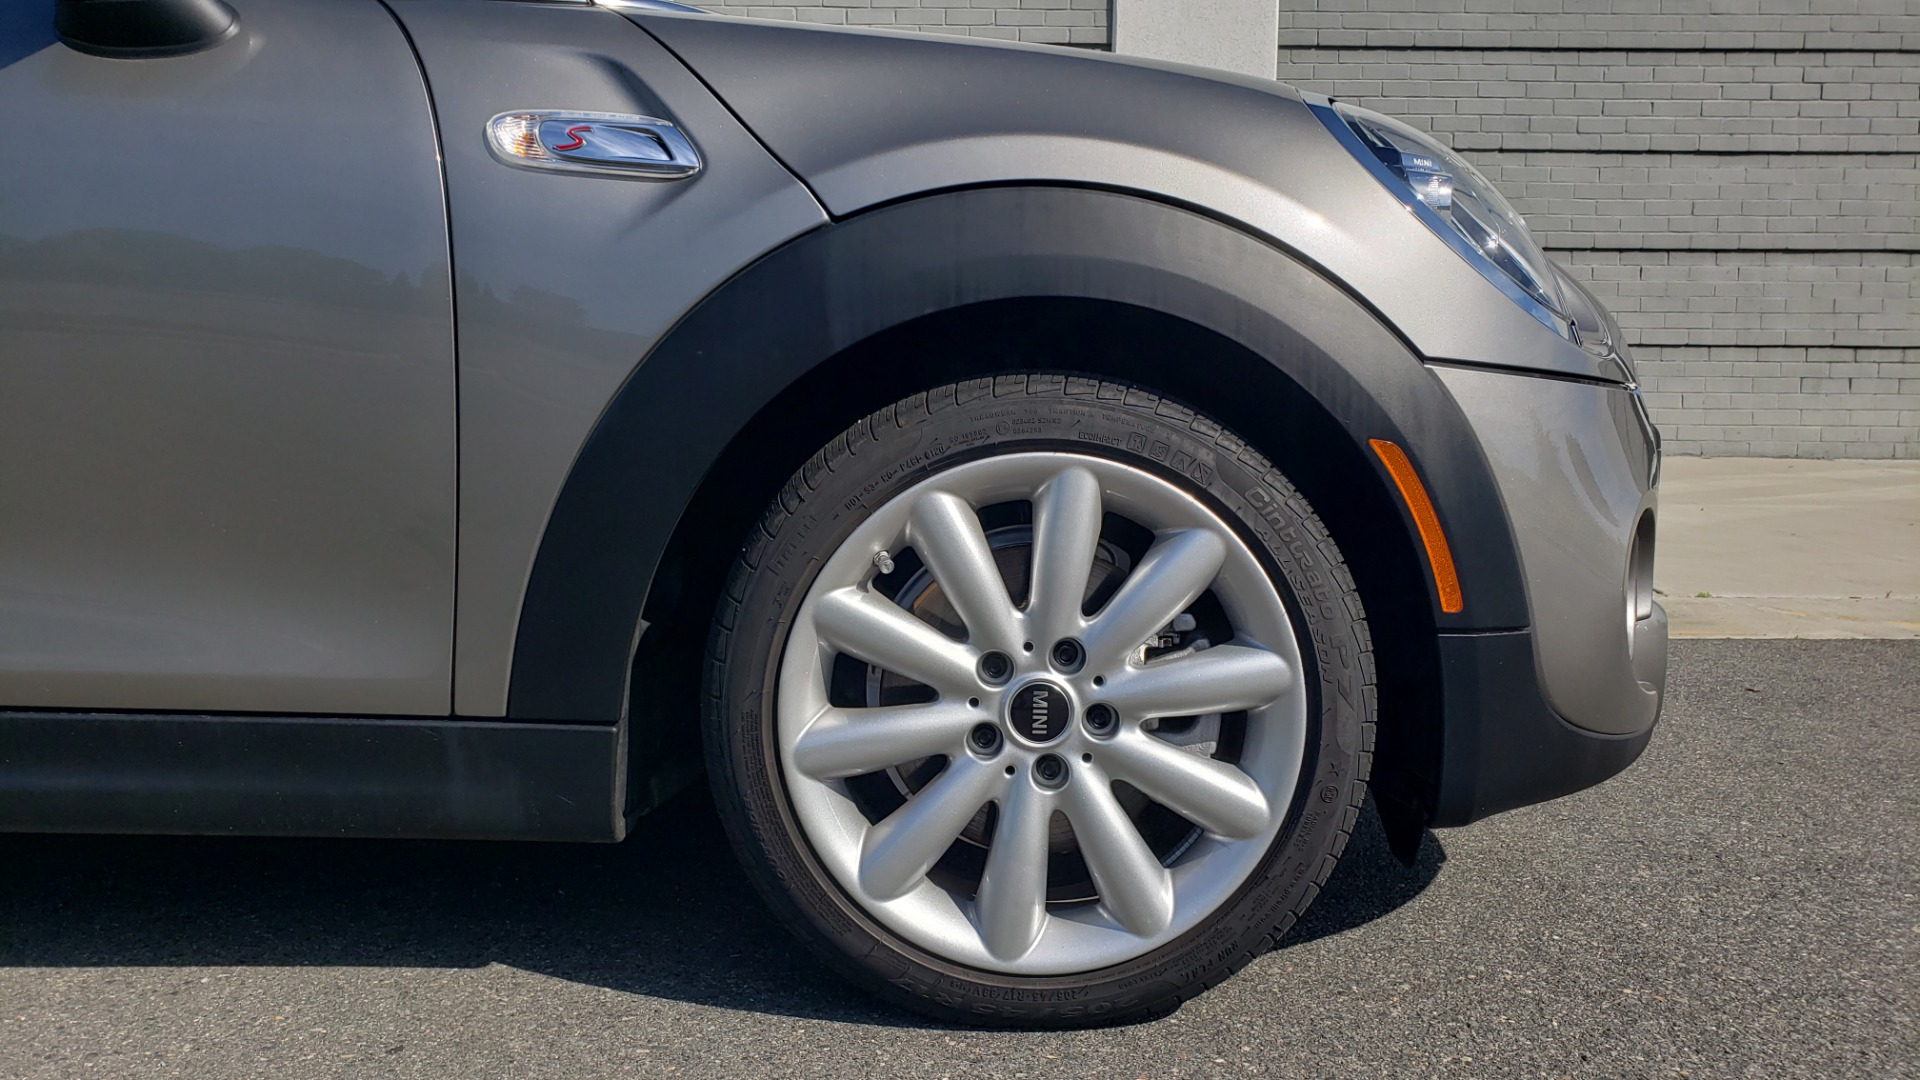 Used 2020 MINI HARDTOP 4 DOOR COOPER S / NAV / SUNROOF / AUTO / H/K SND / REARVIEW for sale $28,495 at Formula Imports in Charlotte NC 28227 85